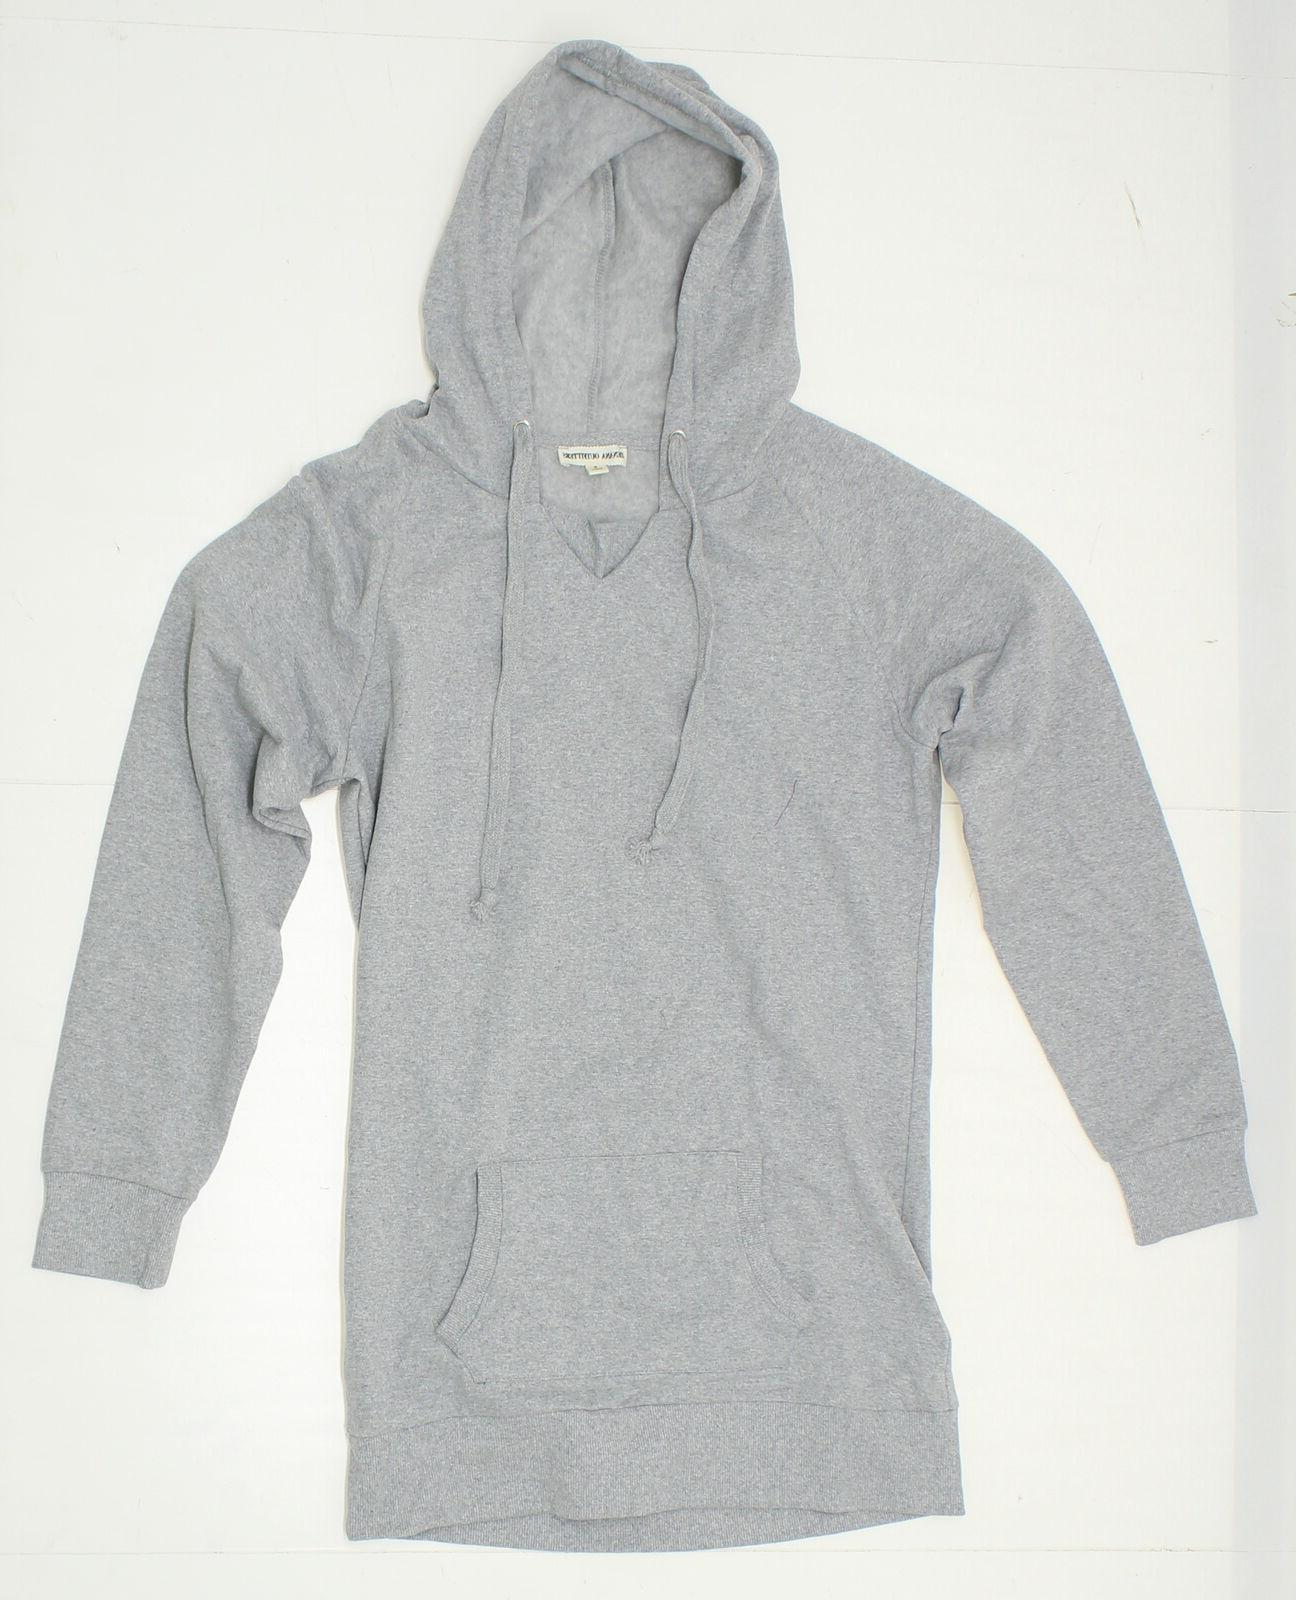 NEW Zenana Outfitters Ladies Long Sleeve V-Neck Hoodie Grey